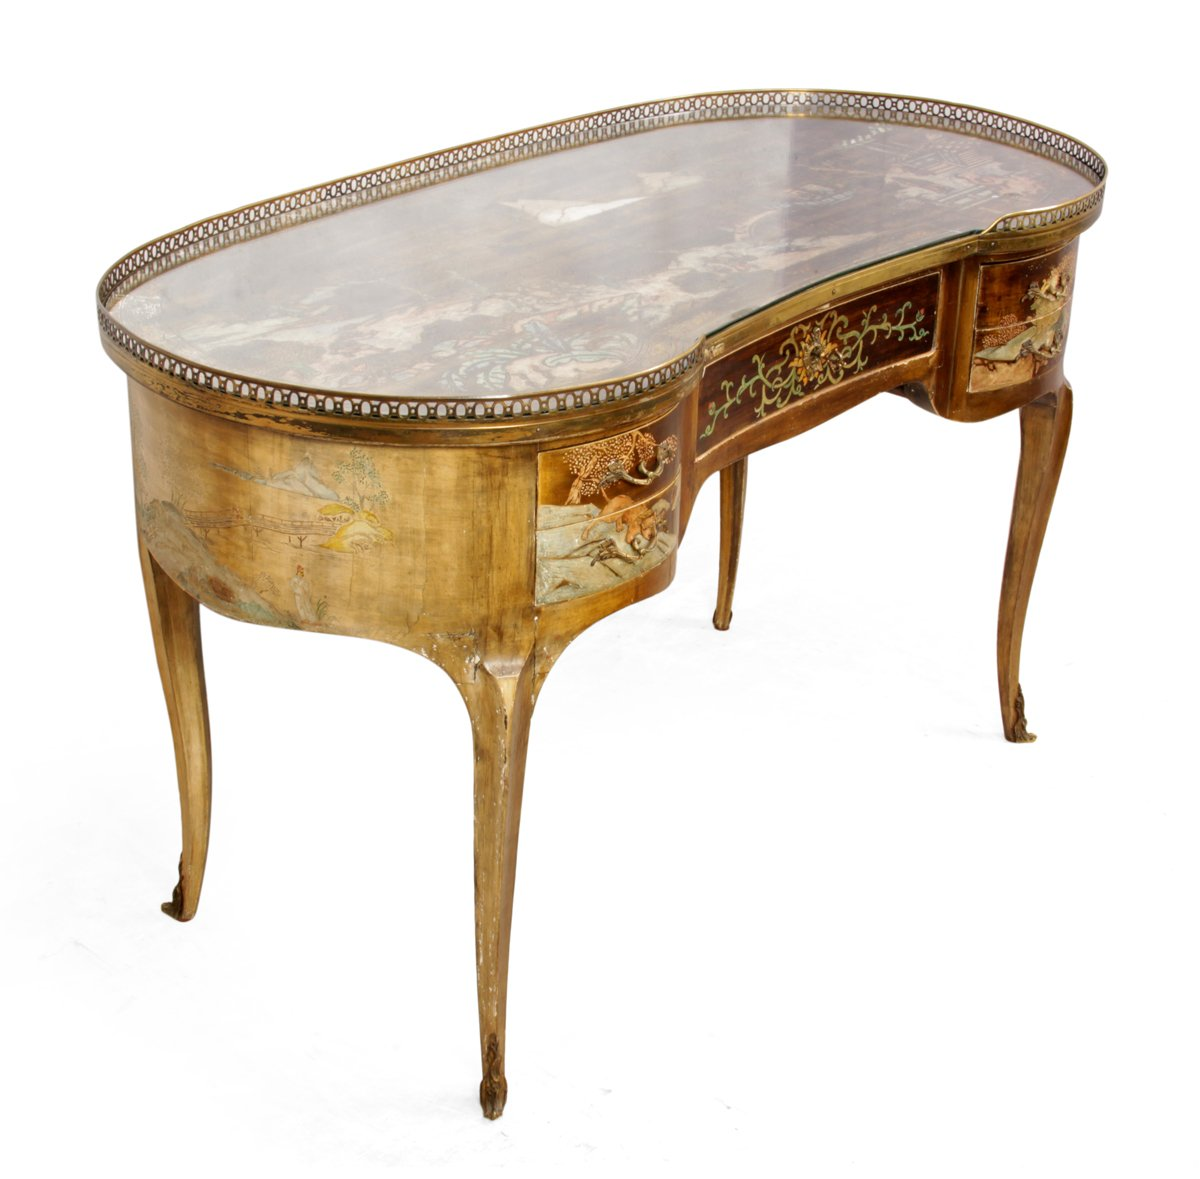 Antique French Chinoiserie Kidney Writing Desk, 1860s - Antique French Chinoiserie Kidney Writing Desk, 1860s For Sale At Pamono